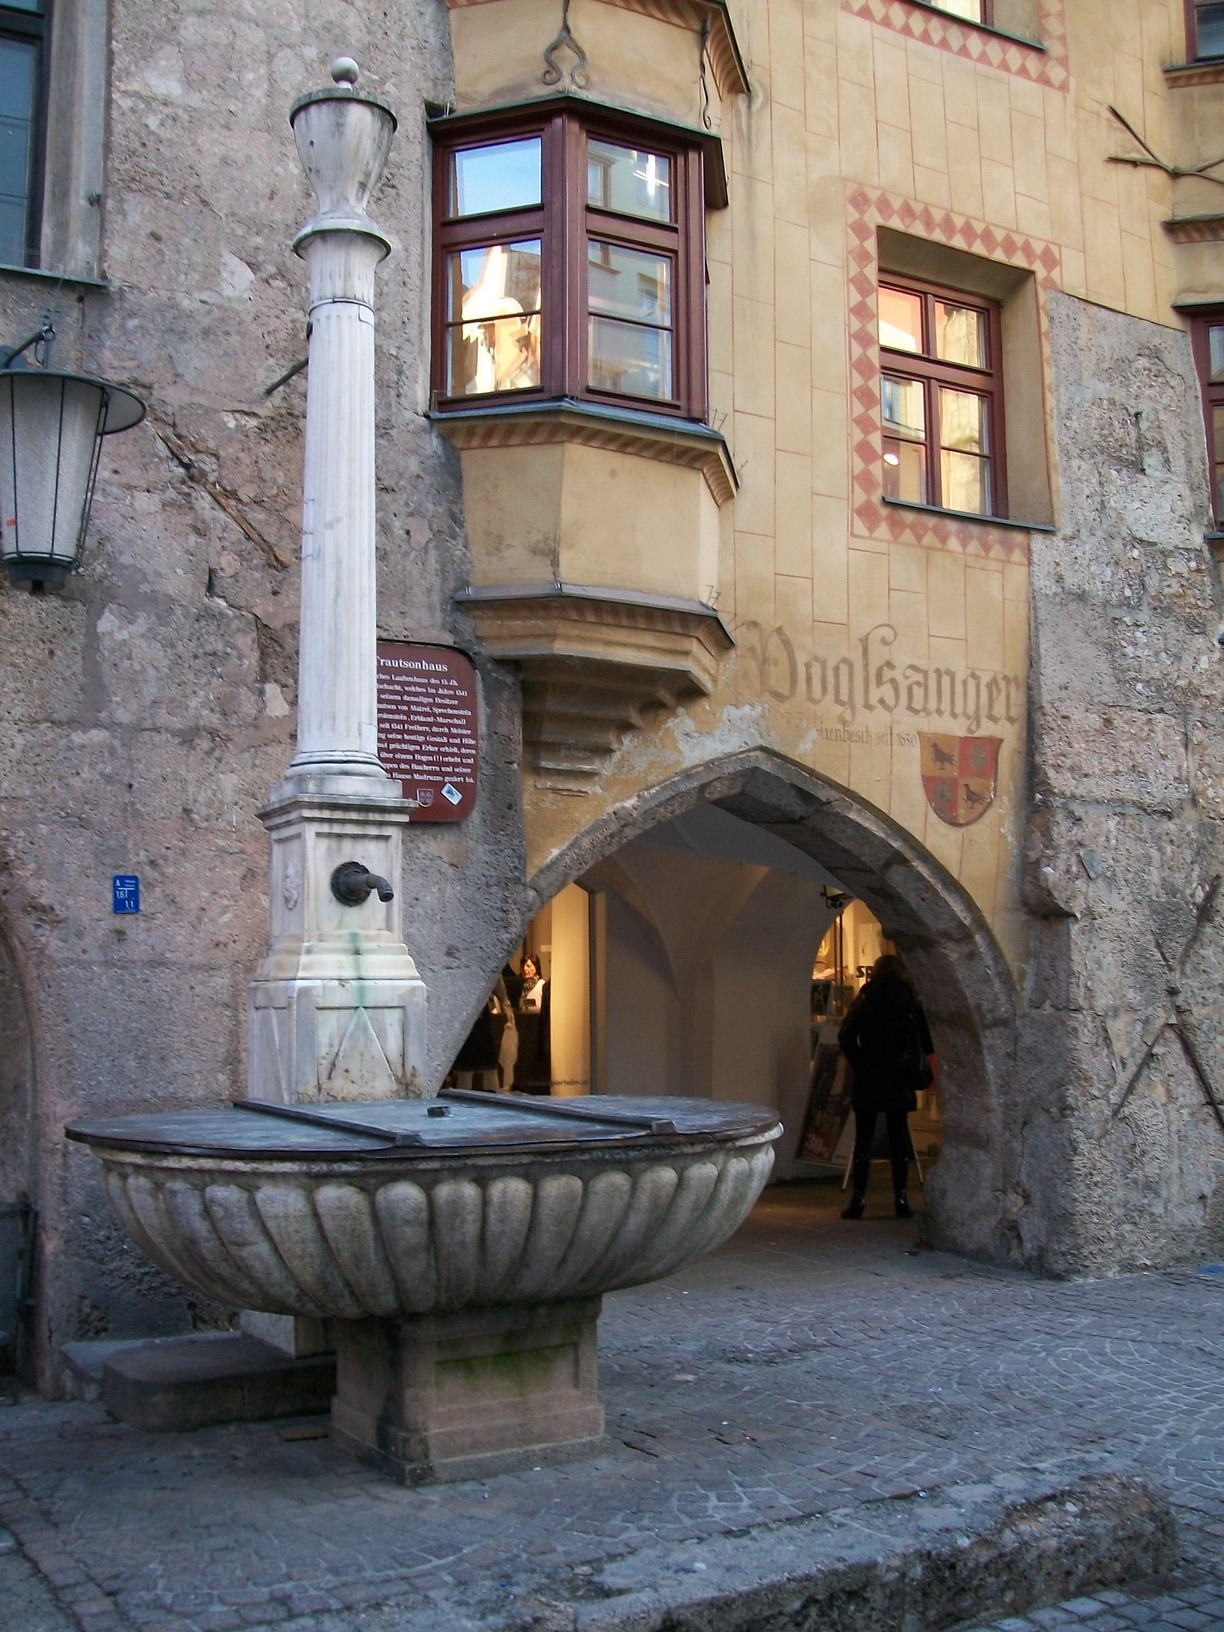 A water fountain outside the entrance to a shop in Innsbruck's Altstad.